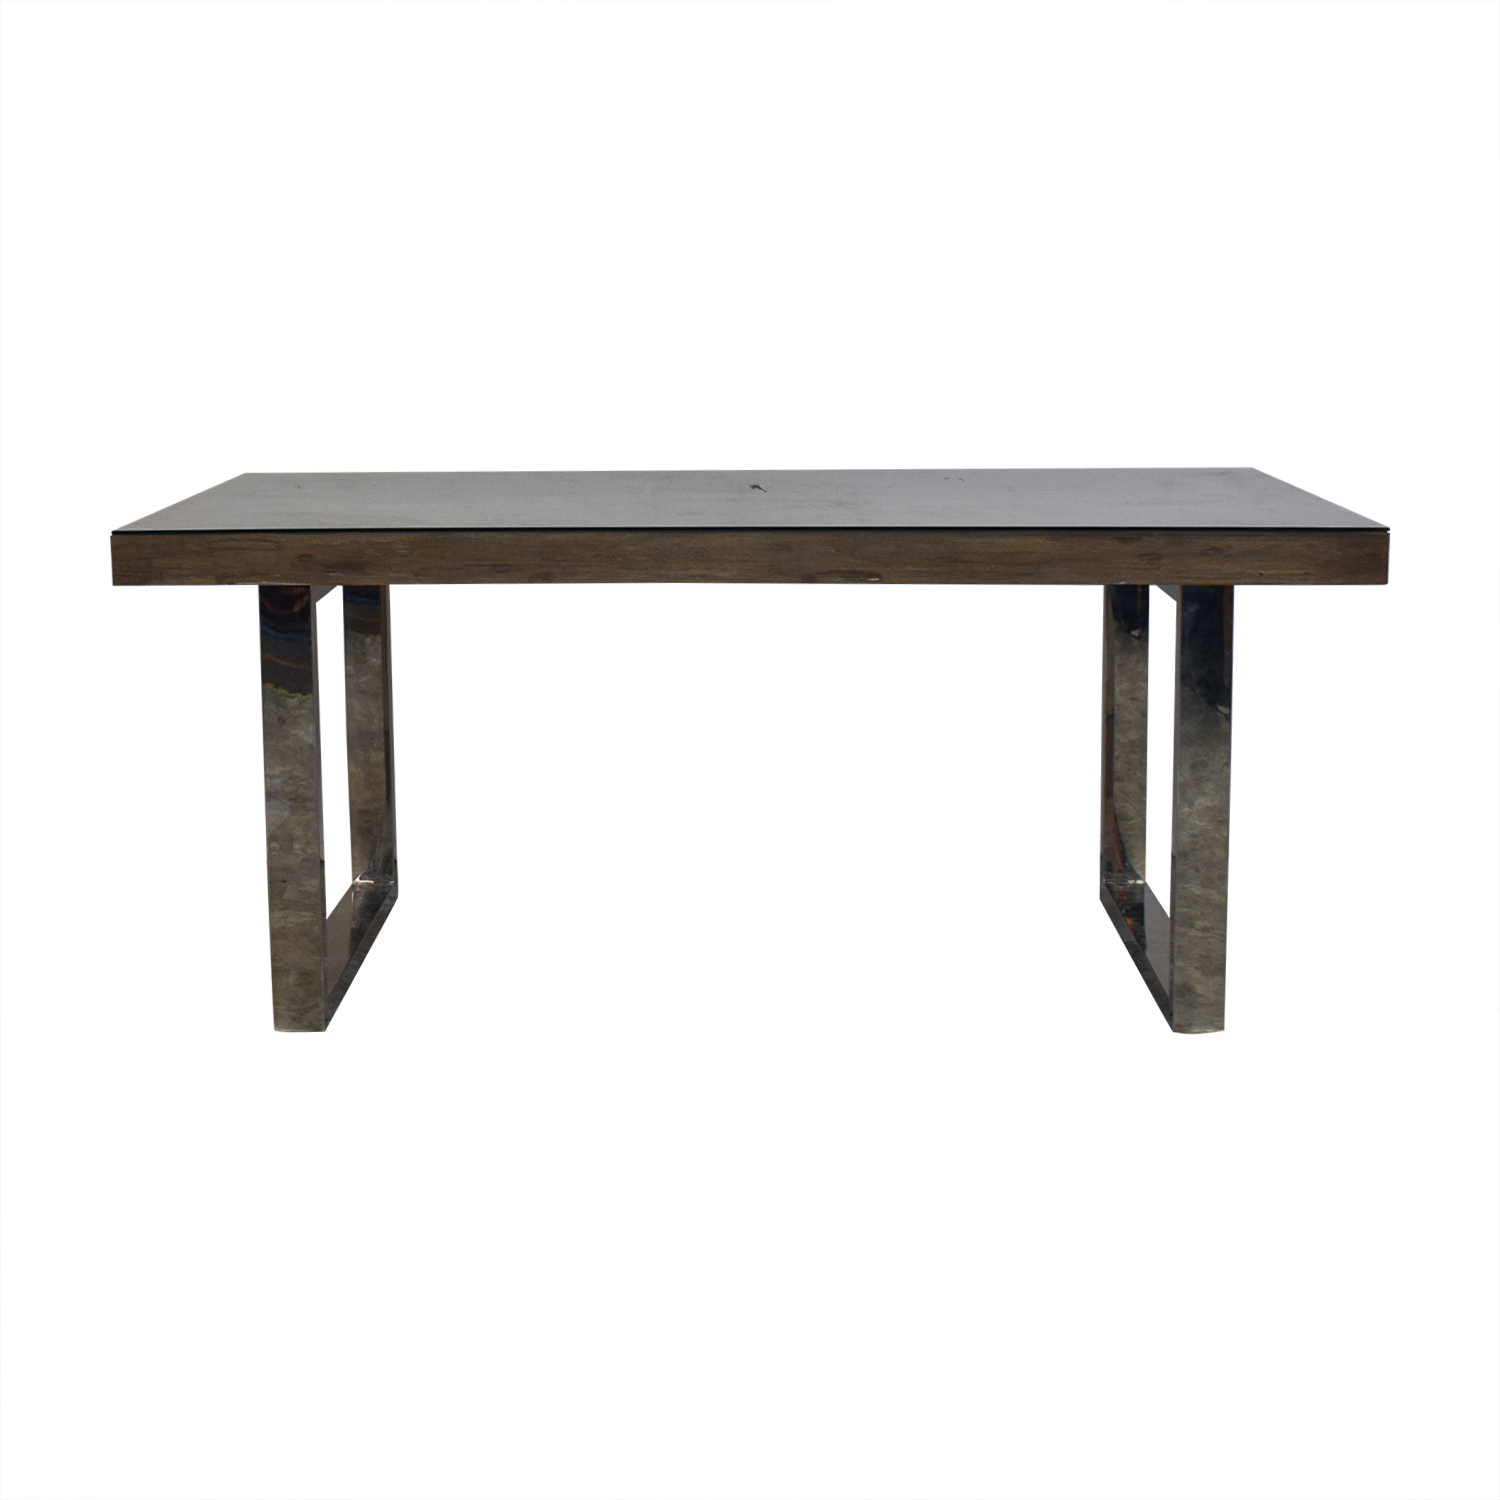 Bernhardt Bernhardt Henley Dining Table nj